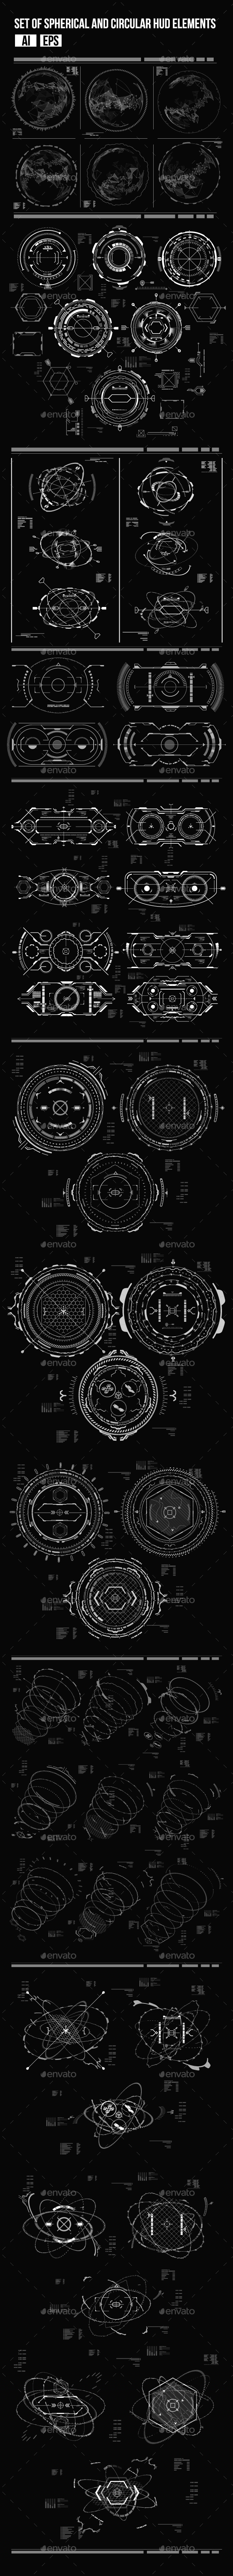 Set of Futuristic Circular HUD Elements - Computers Technology